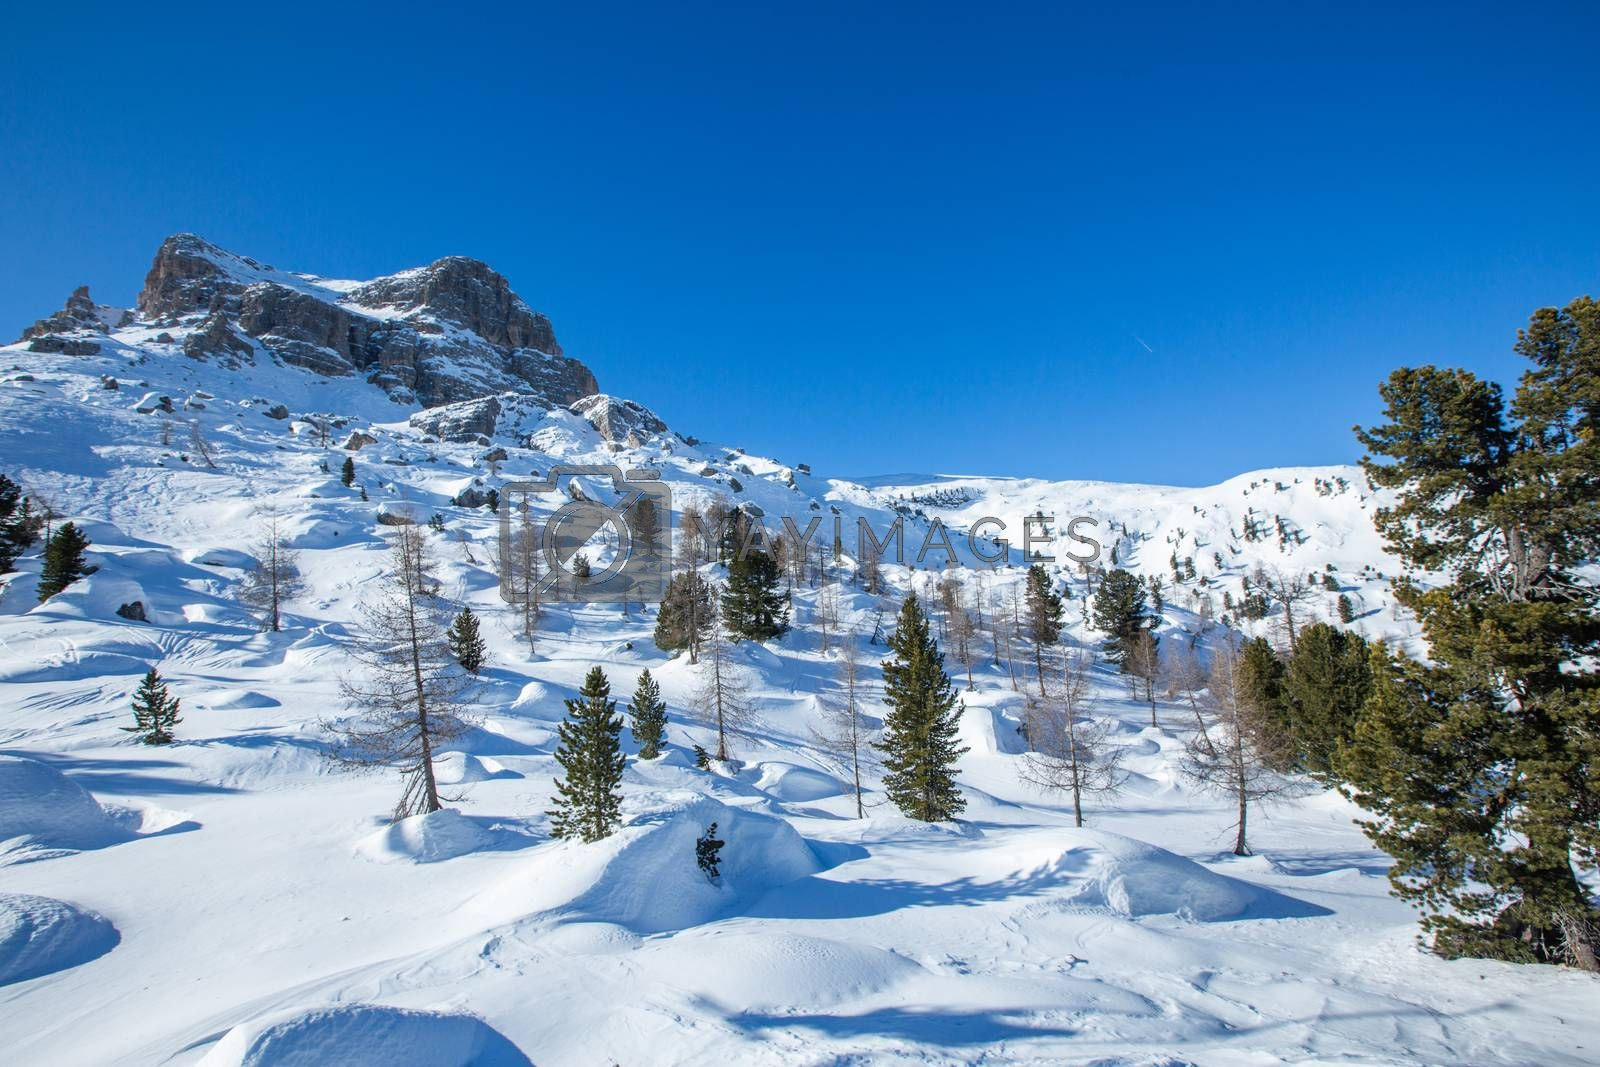 Dolomities Dolomiti Italy in wintertime beautiful alps winter mountains fir and pine trees on freeride slope Cortina d'Ampezzo Cinque torri mountain peaks famous landscape skiing resort area